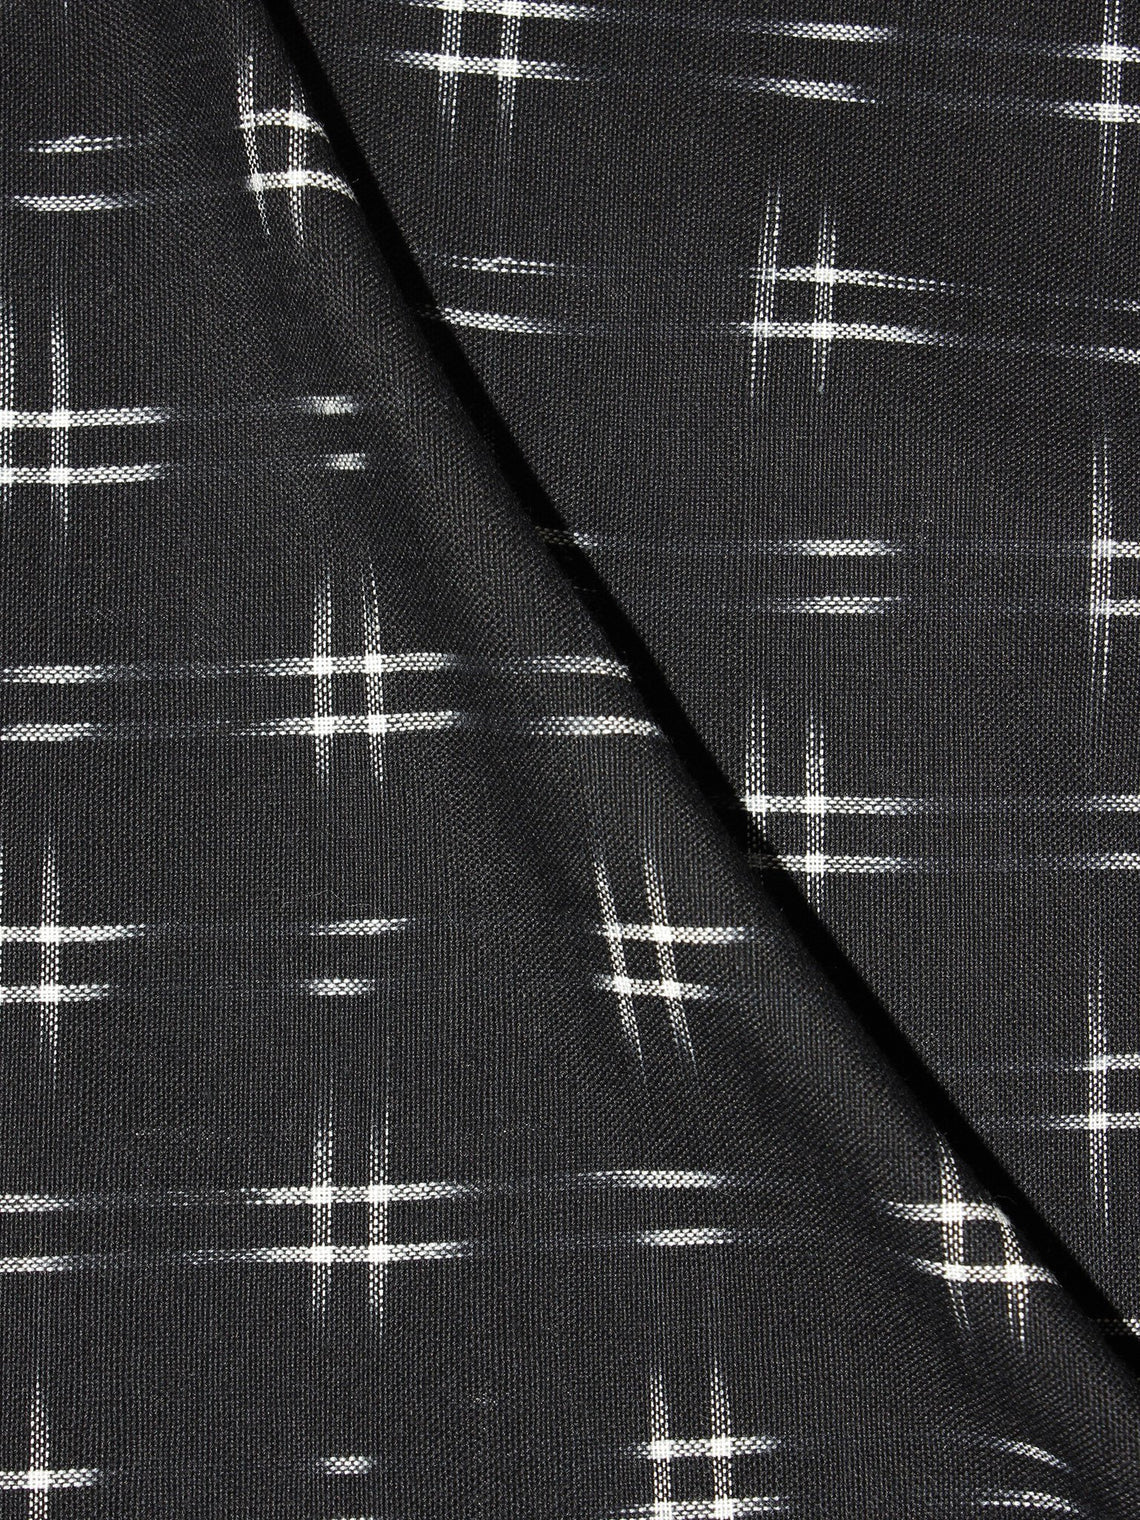 Black White Pochampally Hand Weaved Double Ikat Fabric Per Meter - F0916666